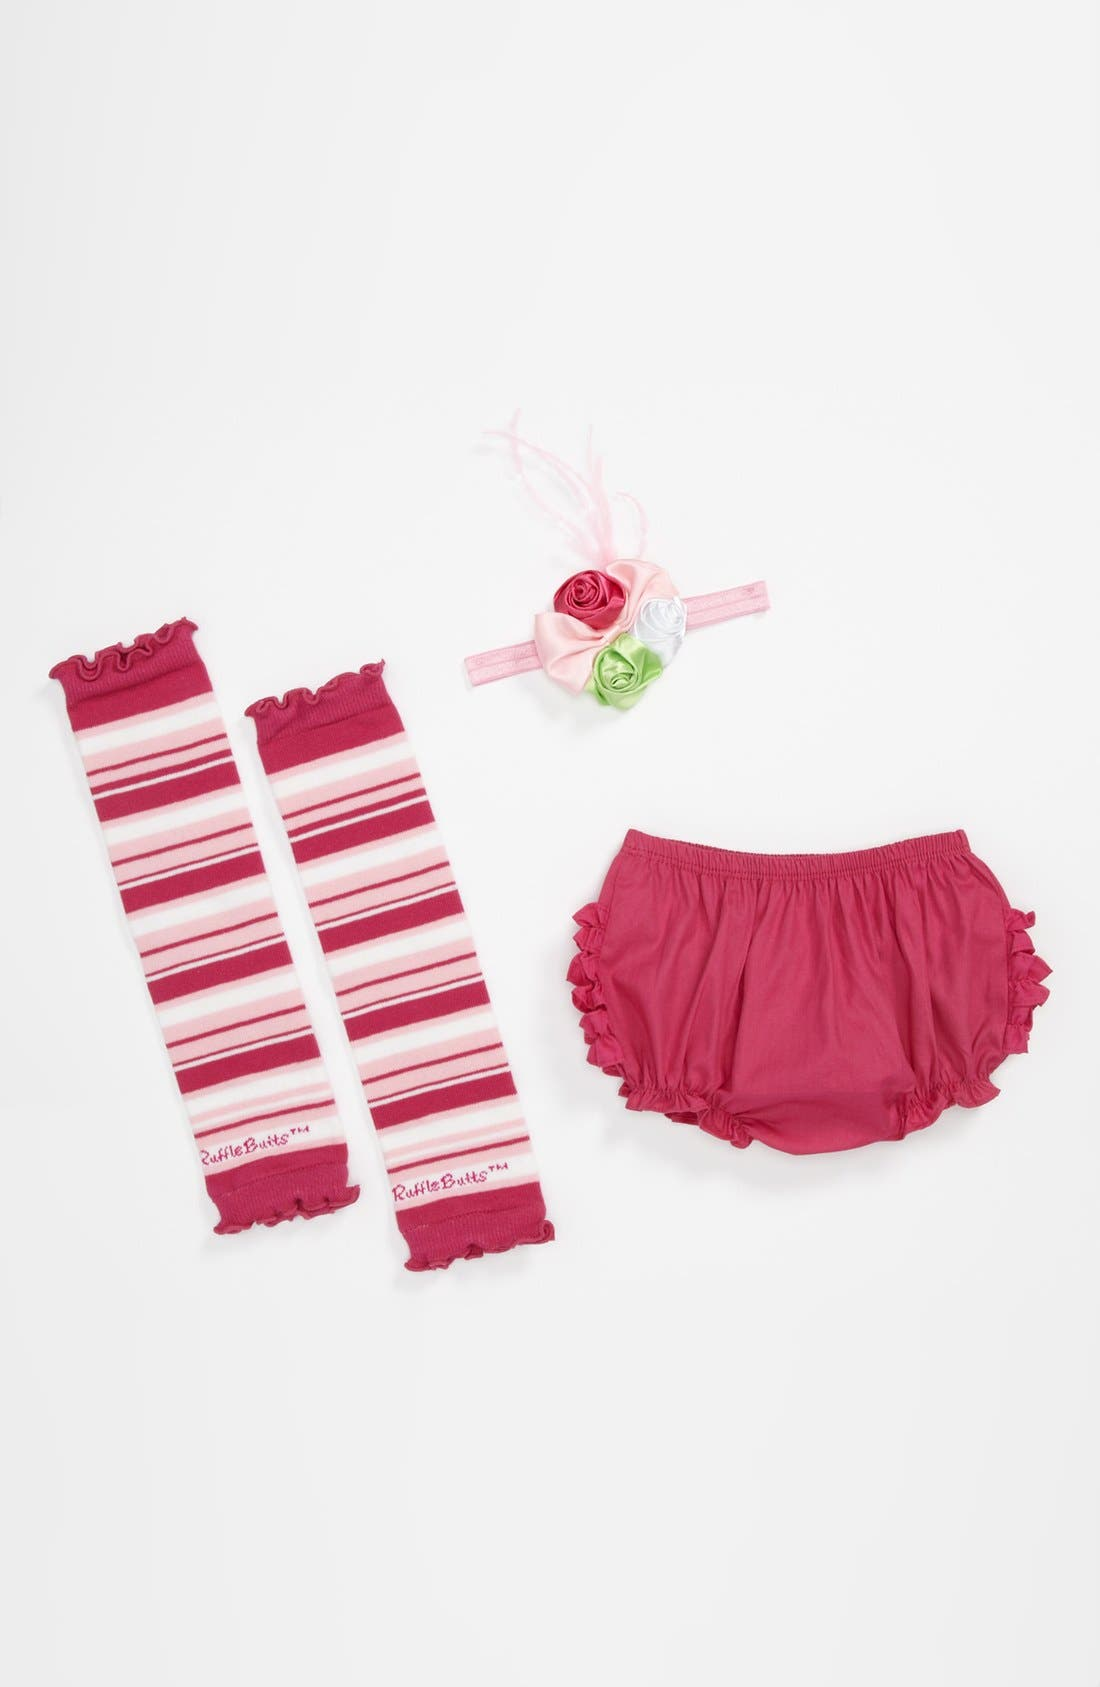 Alternate Image 1 Selected - RuffleButts Headband, Leg Warmers & Bloomers (Baby Girls)